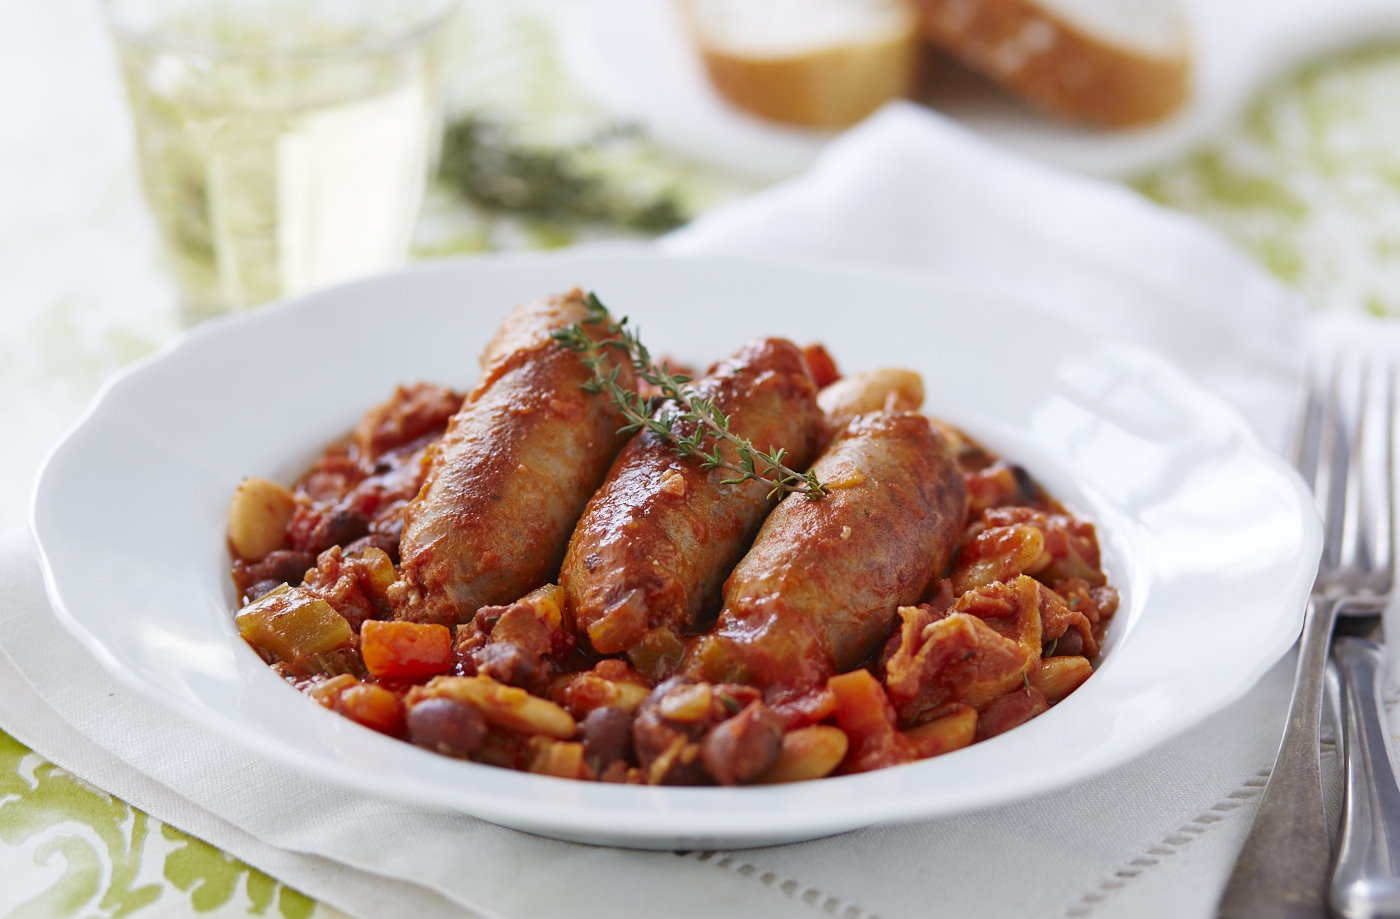 Sausage cassoulet recipe